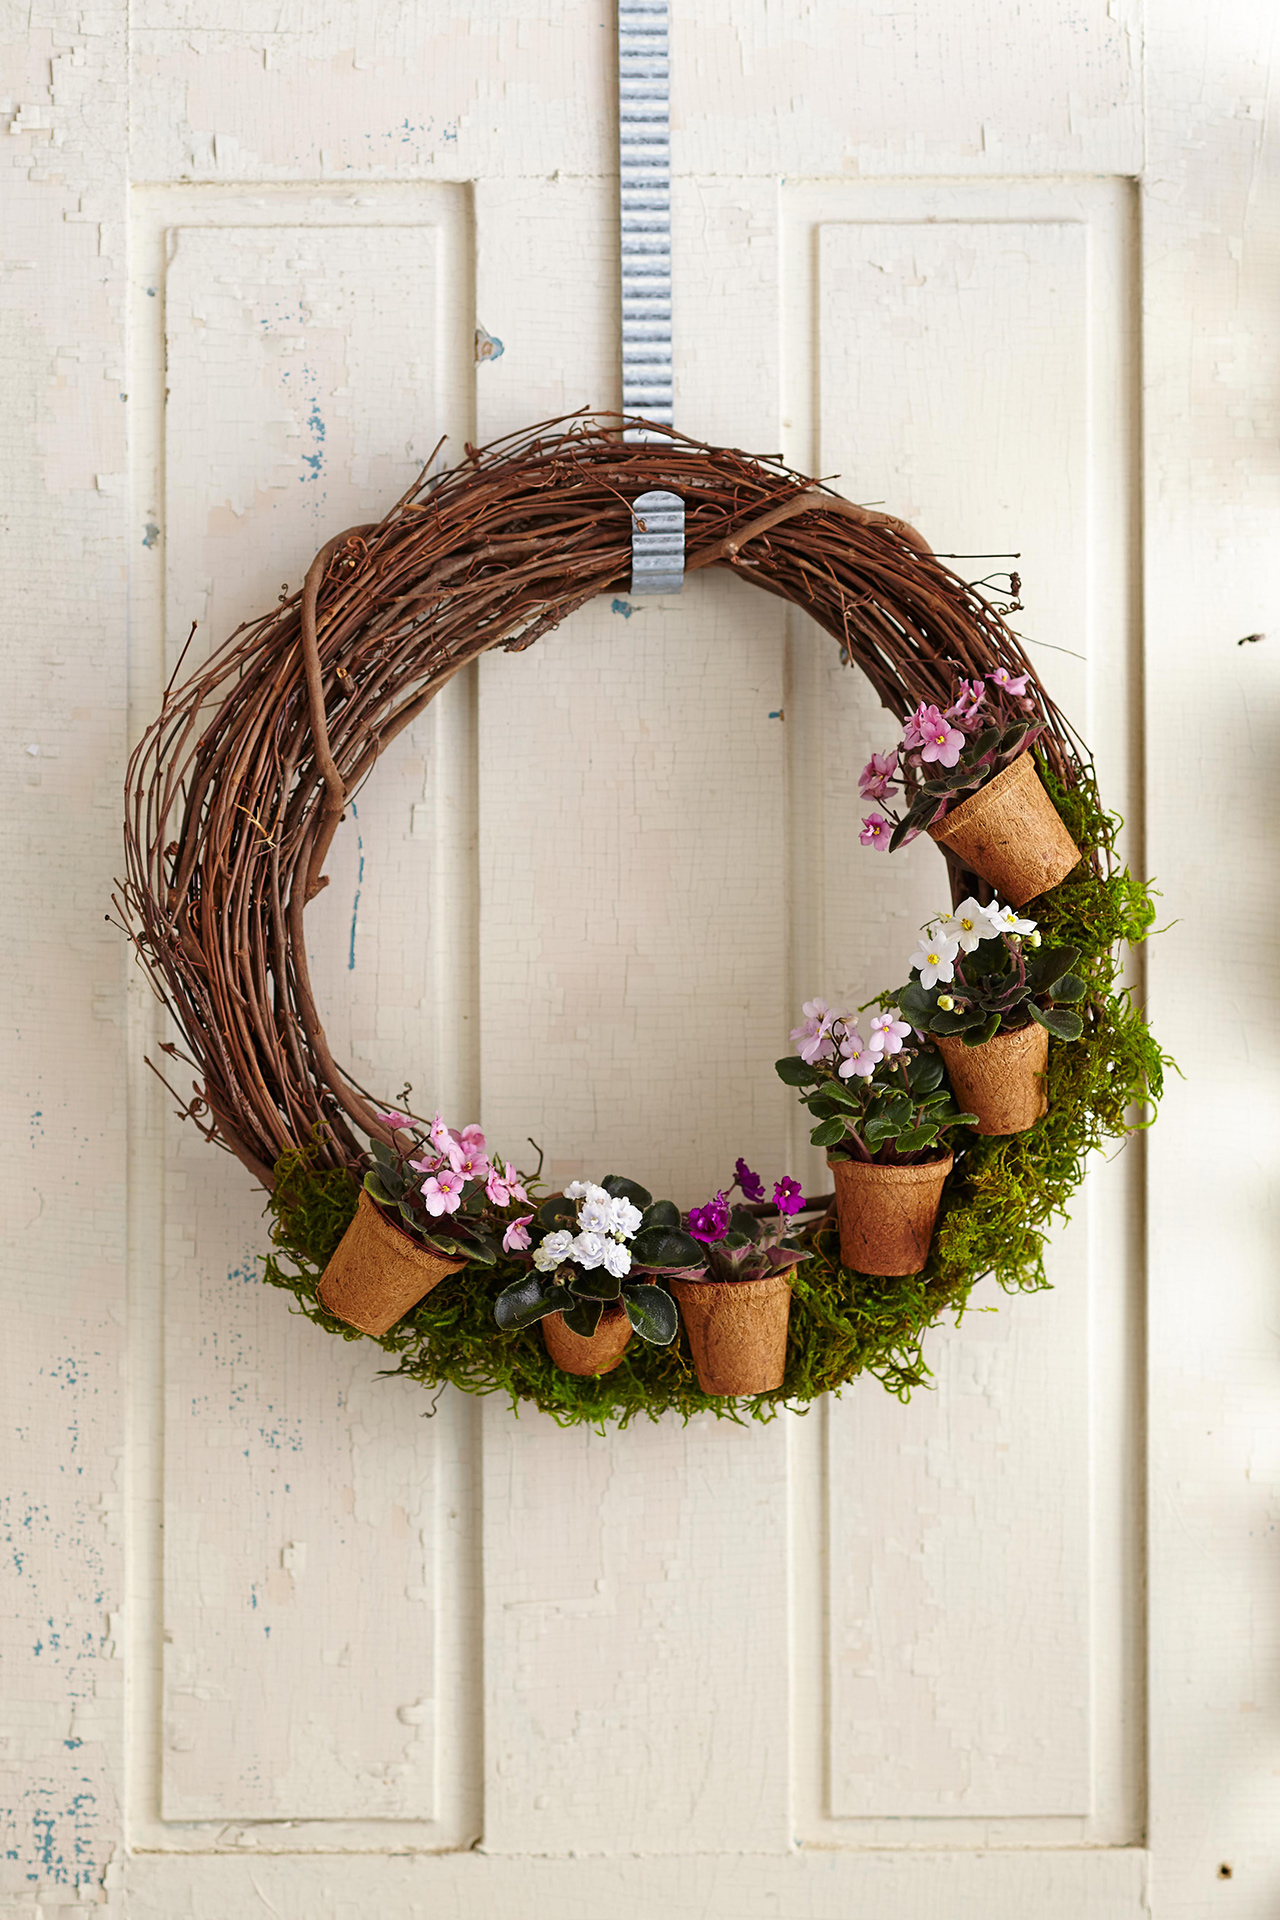 Flower pots on wreath made from twigs hanging on door